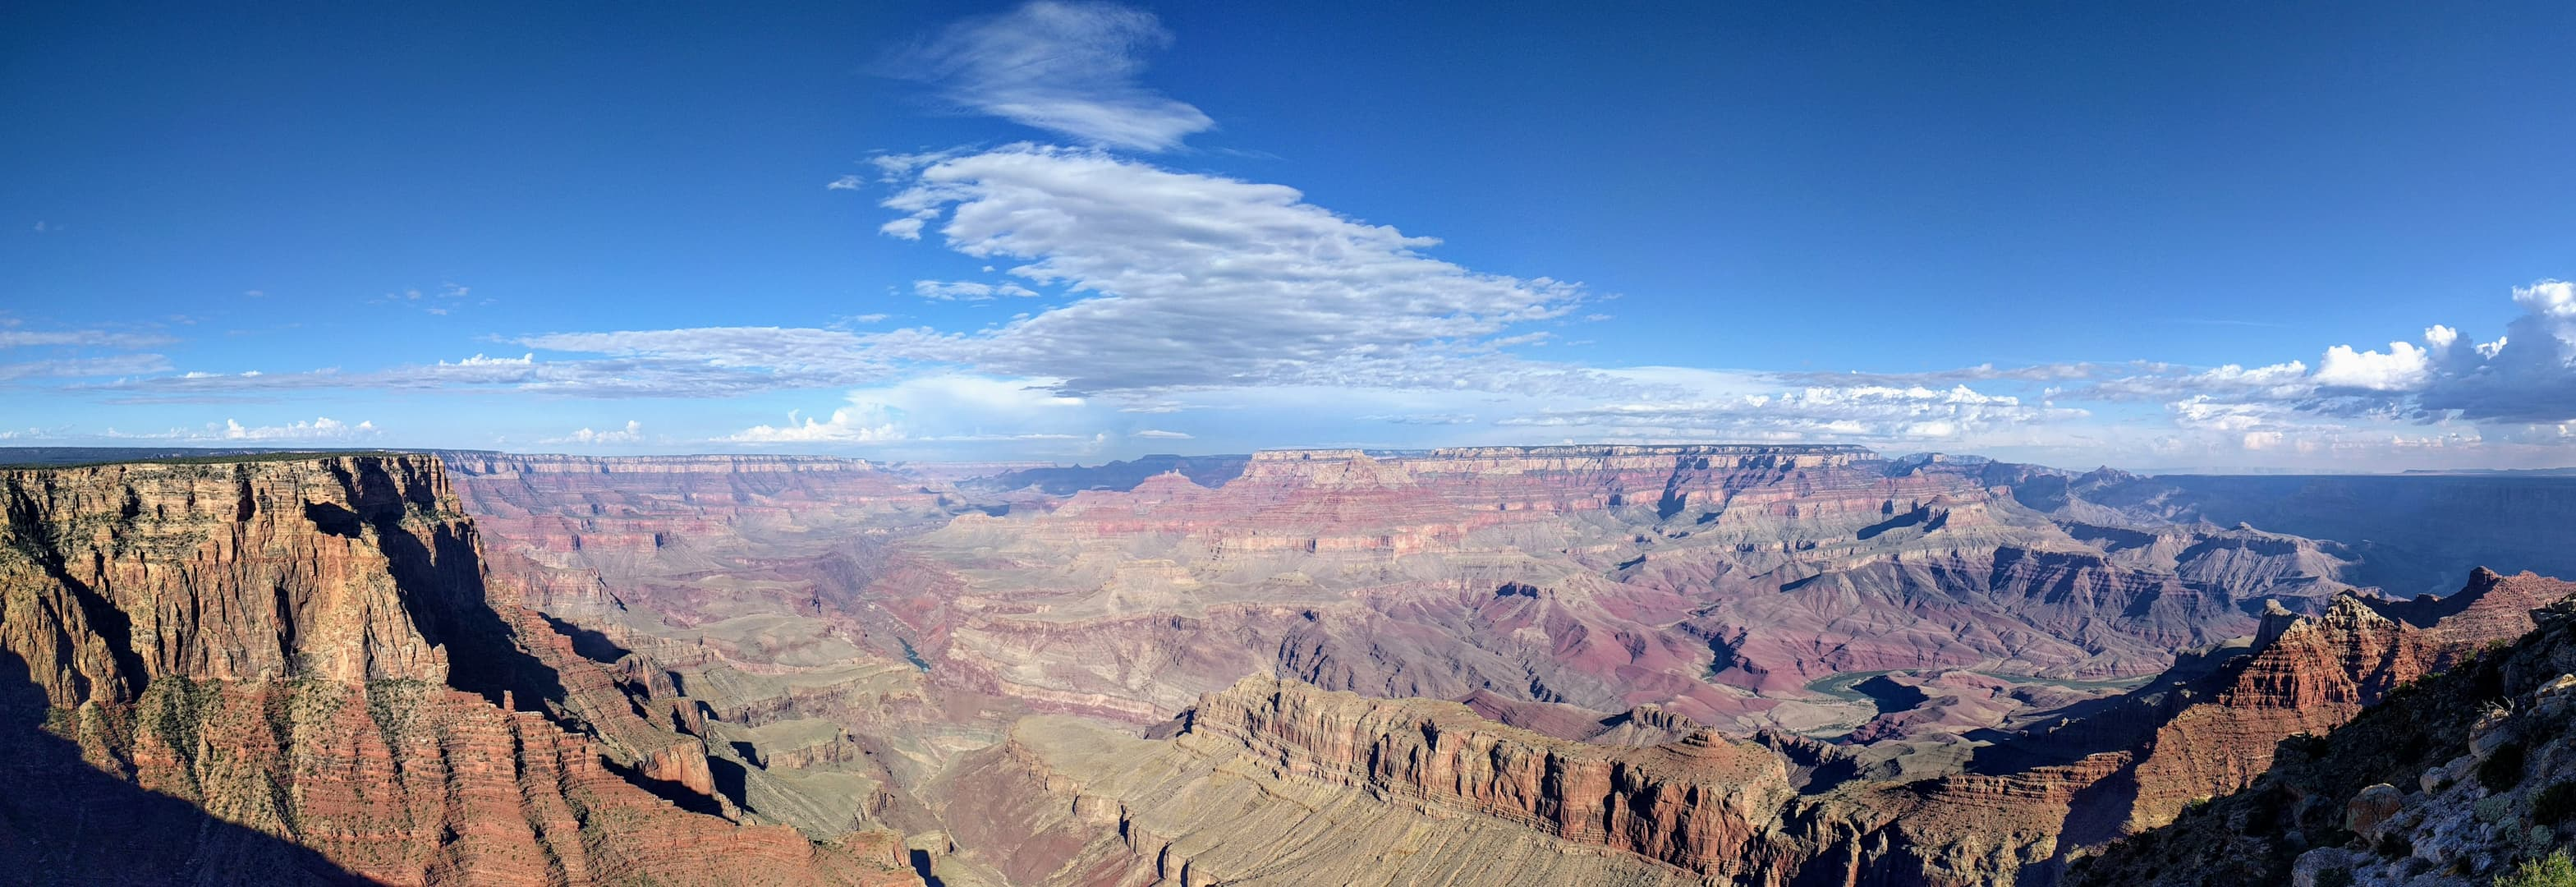 A view along the Grand Canyon from the South Rim, almost parallel to the Colorado River's course. The River itself is barely visible in a steep gorge near the center of the Canyon.